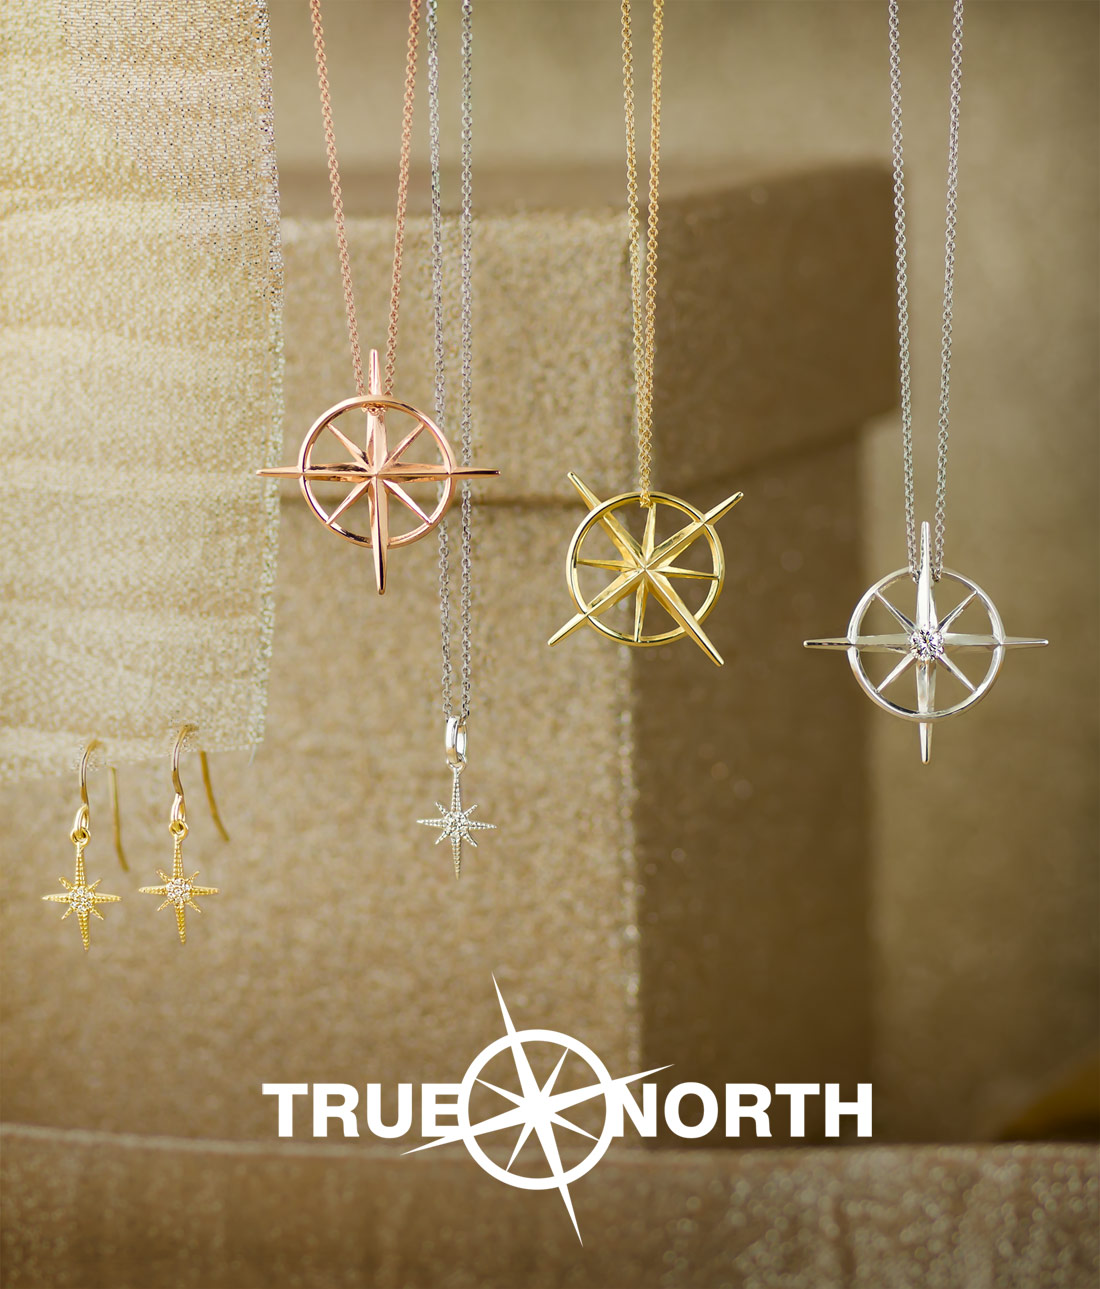 True North - Always be true to your North Star